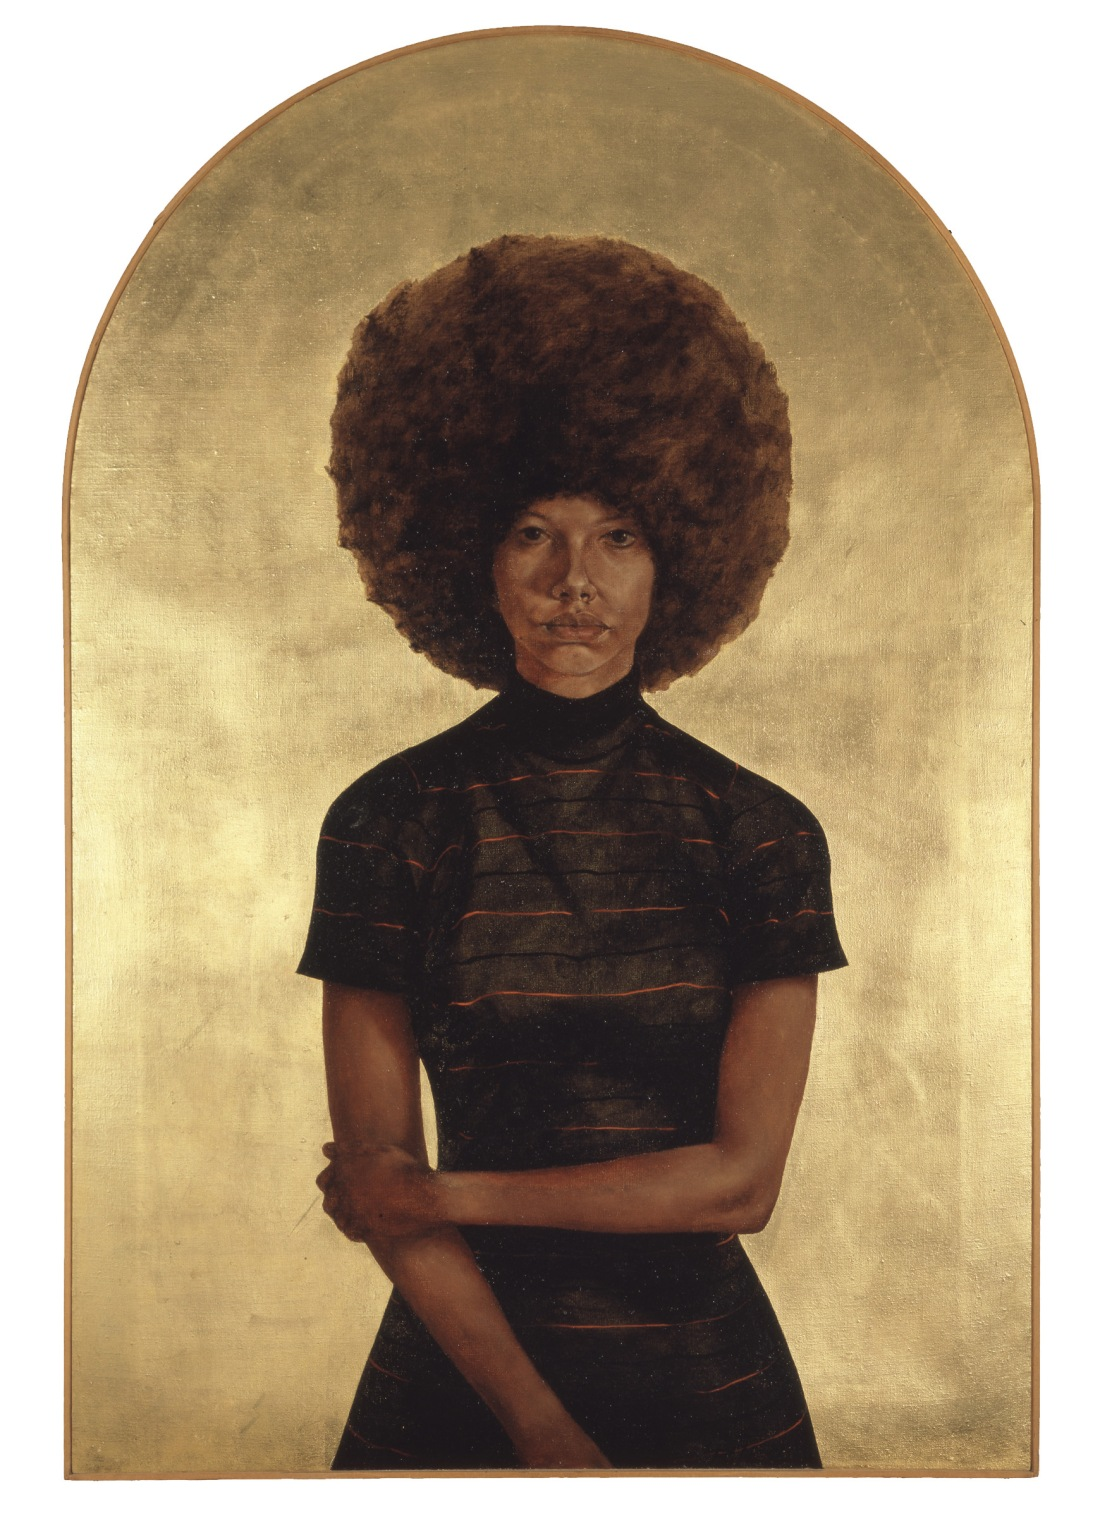 Barkley L. Hendricks, Lawdy Mama, 1969. Collection of The Studio Museum in Harlem, New York.